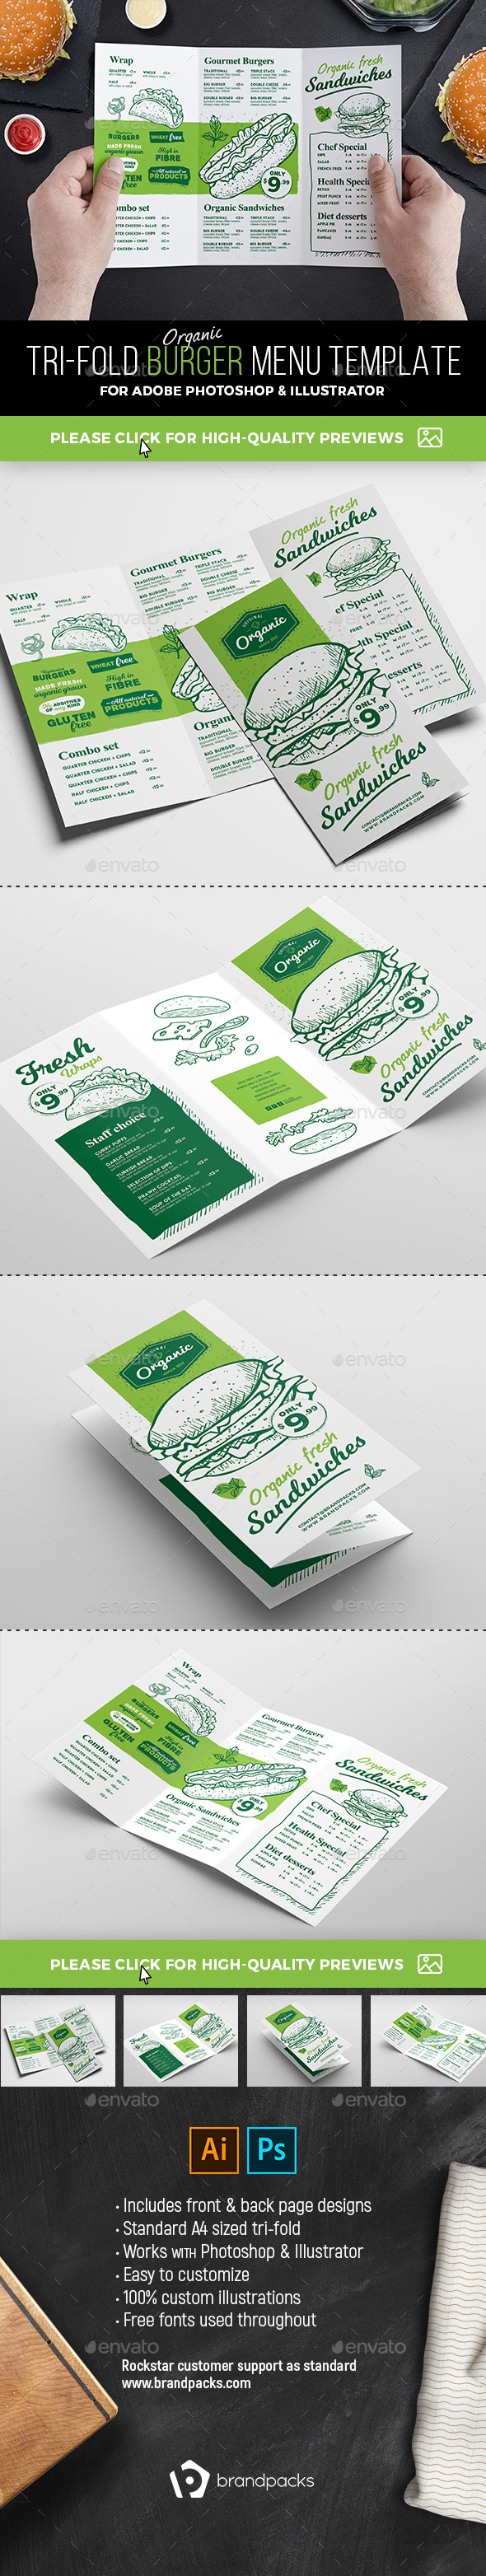 GraphicRiver Tri-Fold Burger Menu Template 21080456